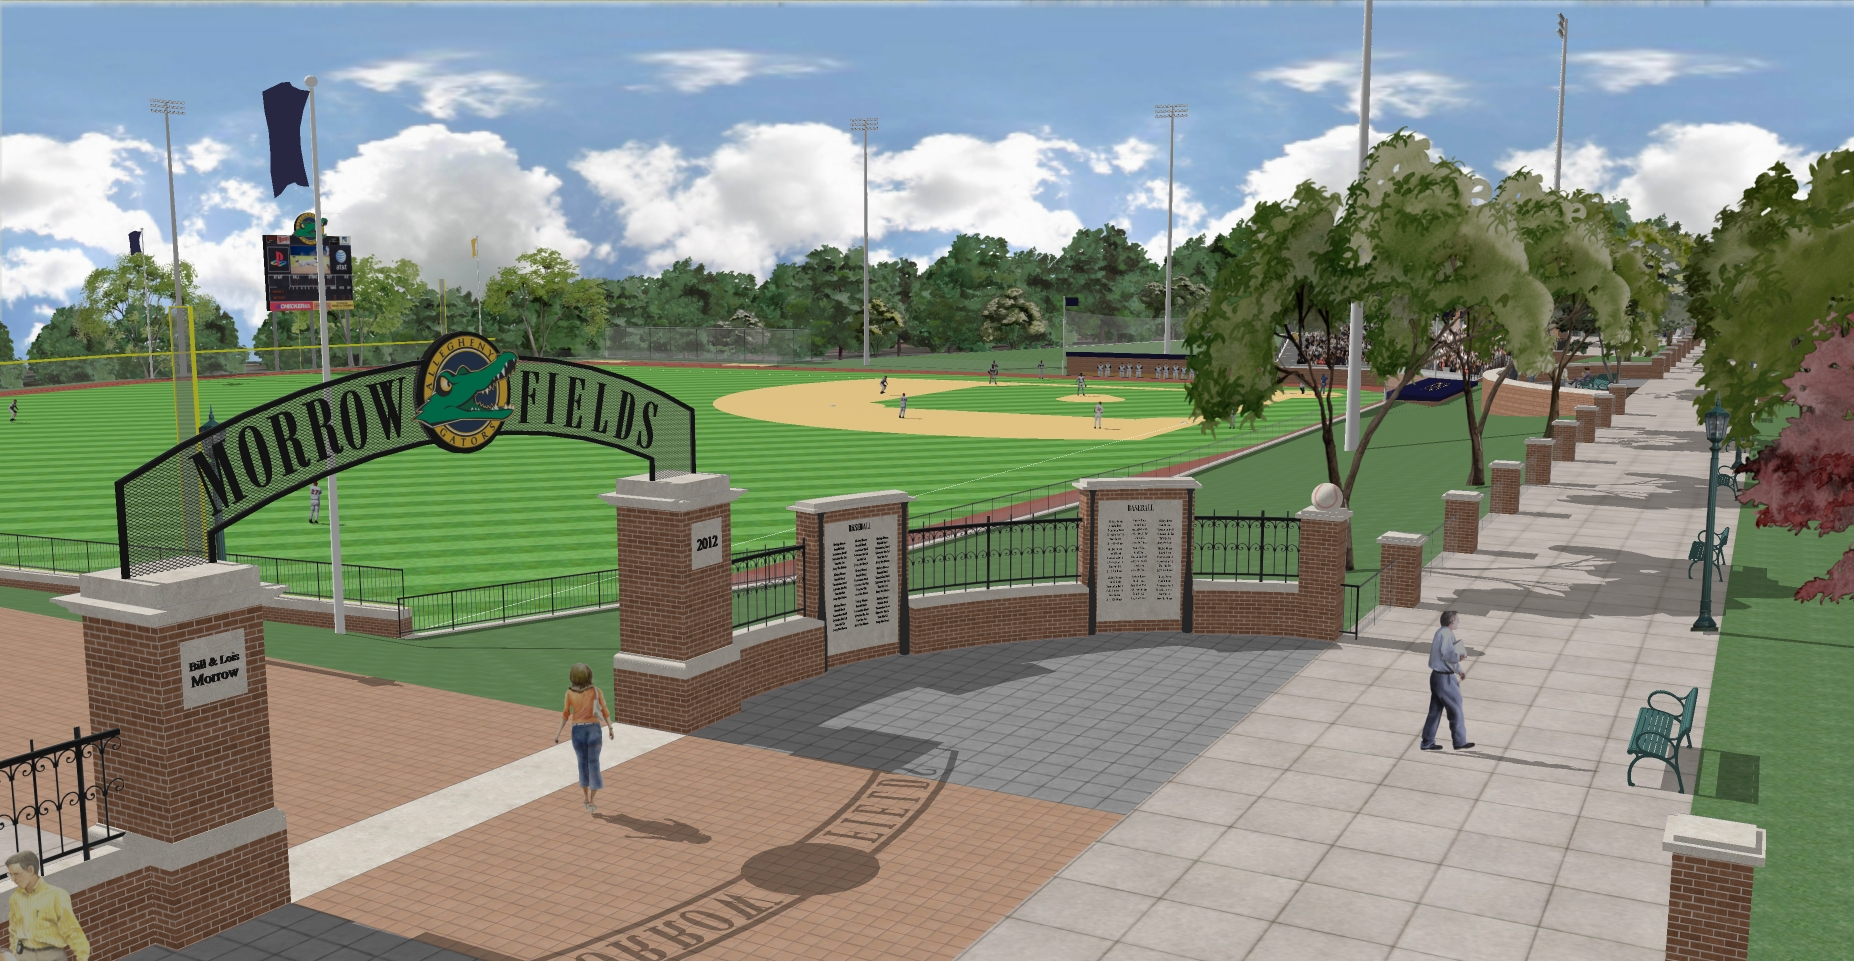 Allegheny-College-Baseball-and-Softball-Concepts-1.jpg